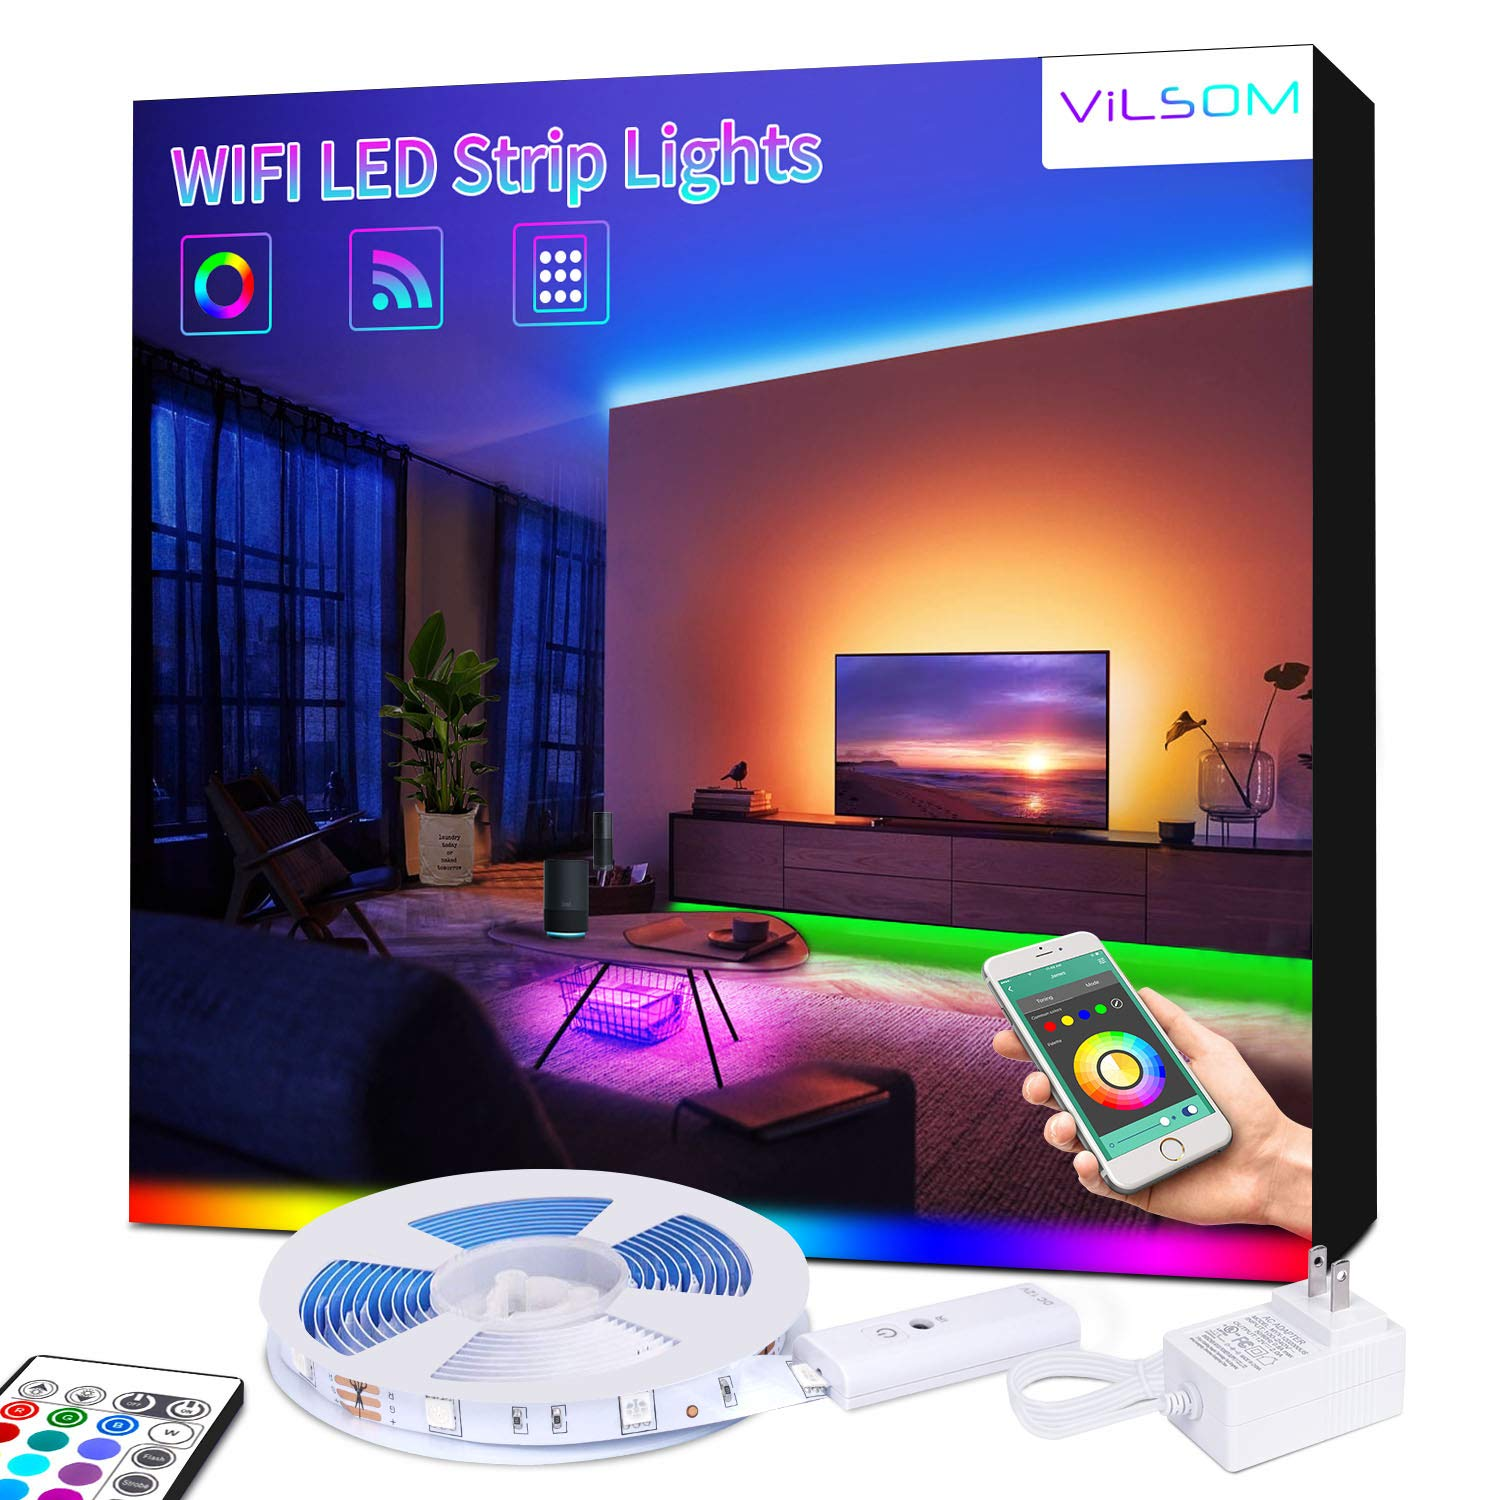 WiFi Smart LED Strip Lights - ViLSOM Voice App Controlled LED Light Strip, RGB 16 Million Color Changing Rope Lights for Bedroom, Room Decor, Works with Alexa, Google Home, iOS and Android, 16.4ft